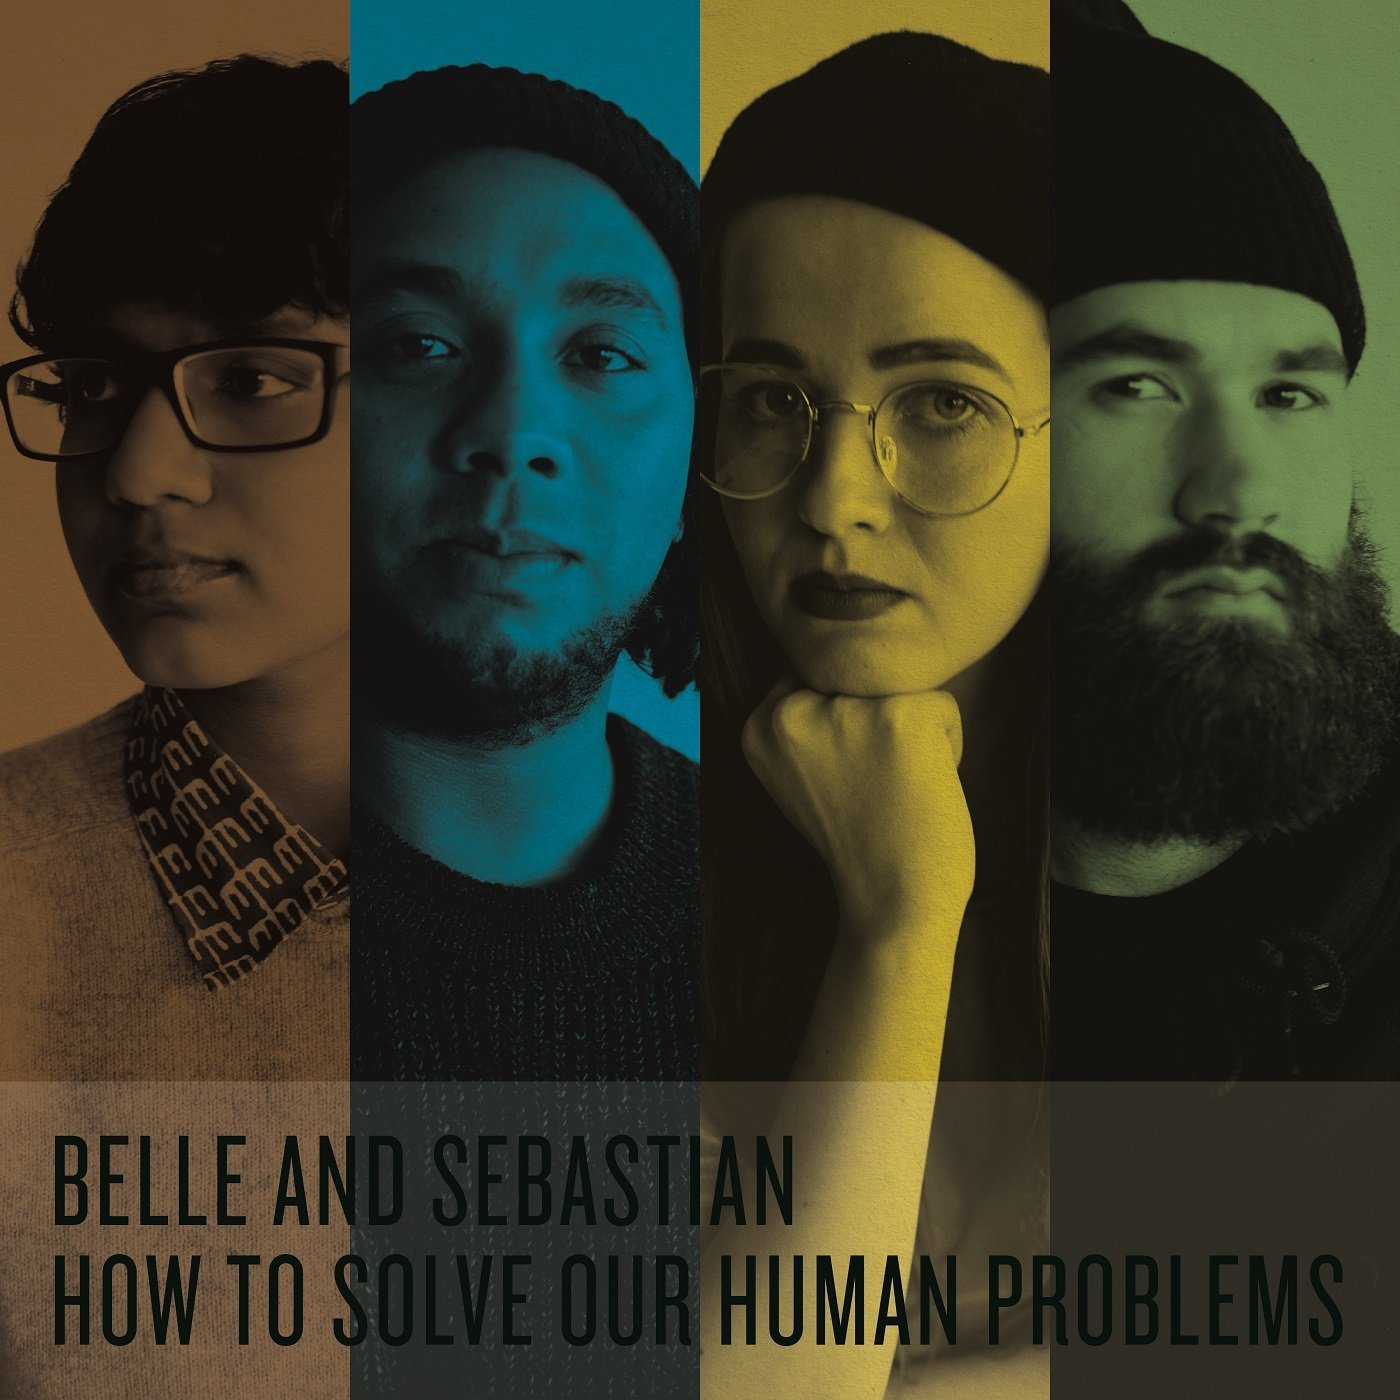 Belle & Sebastian - How To Solve Our Human Problems [Limited Edition LP Box Set]